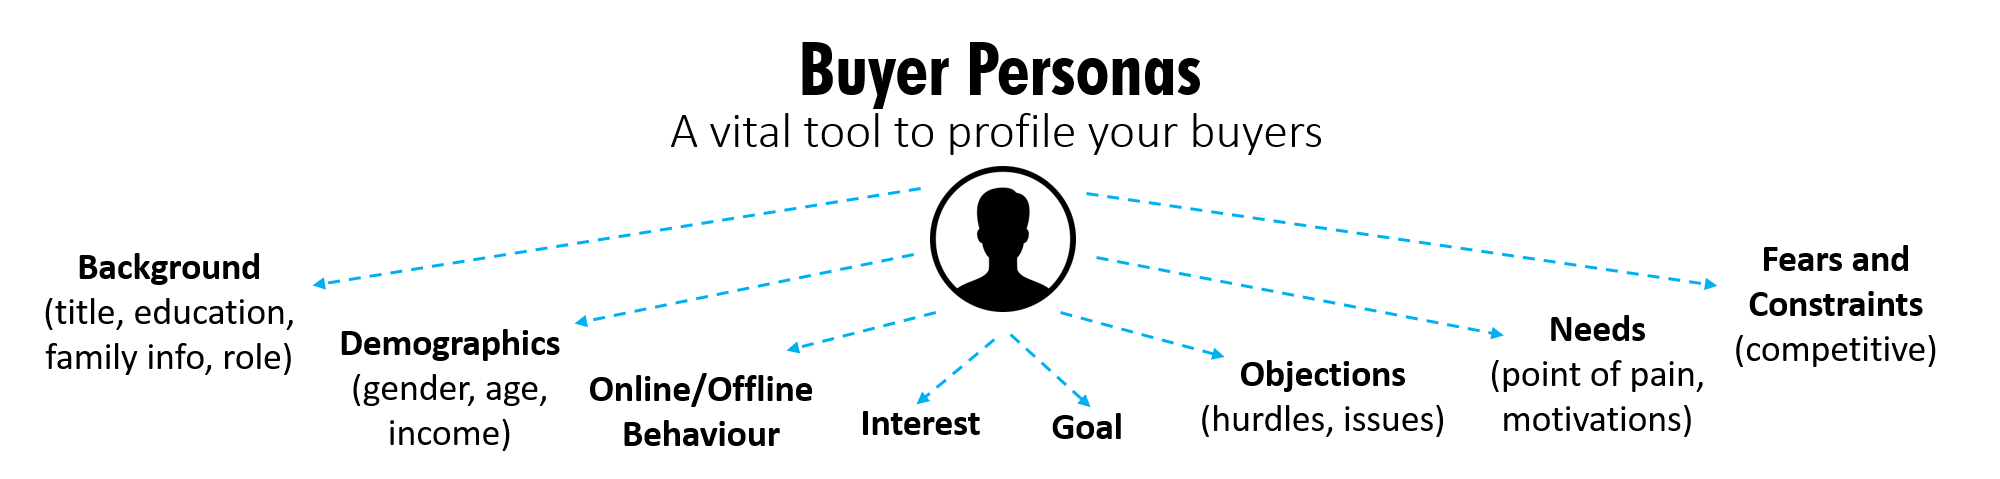 Buyer Persona Development, Creating Buyer Personas, Build Buyer Personas, Develop a Buyer Persona